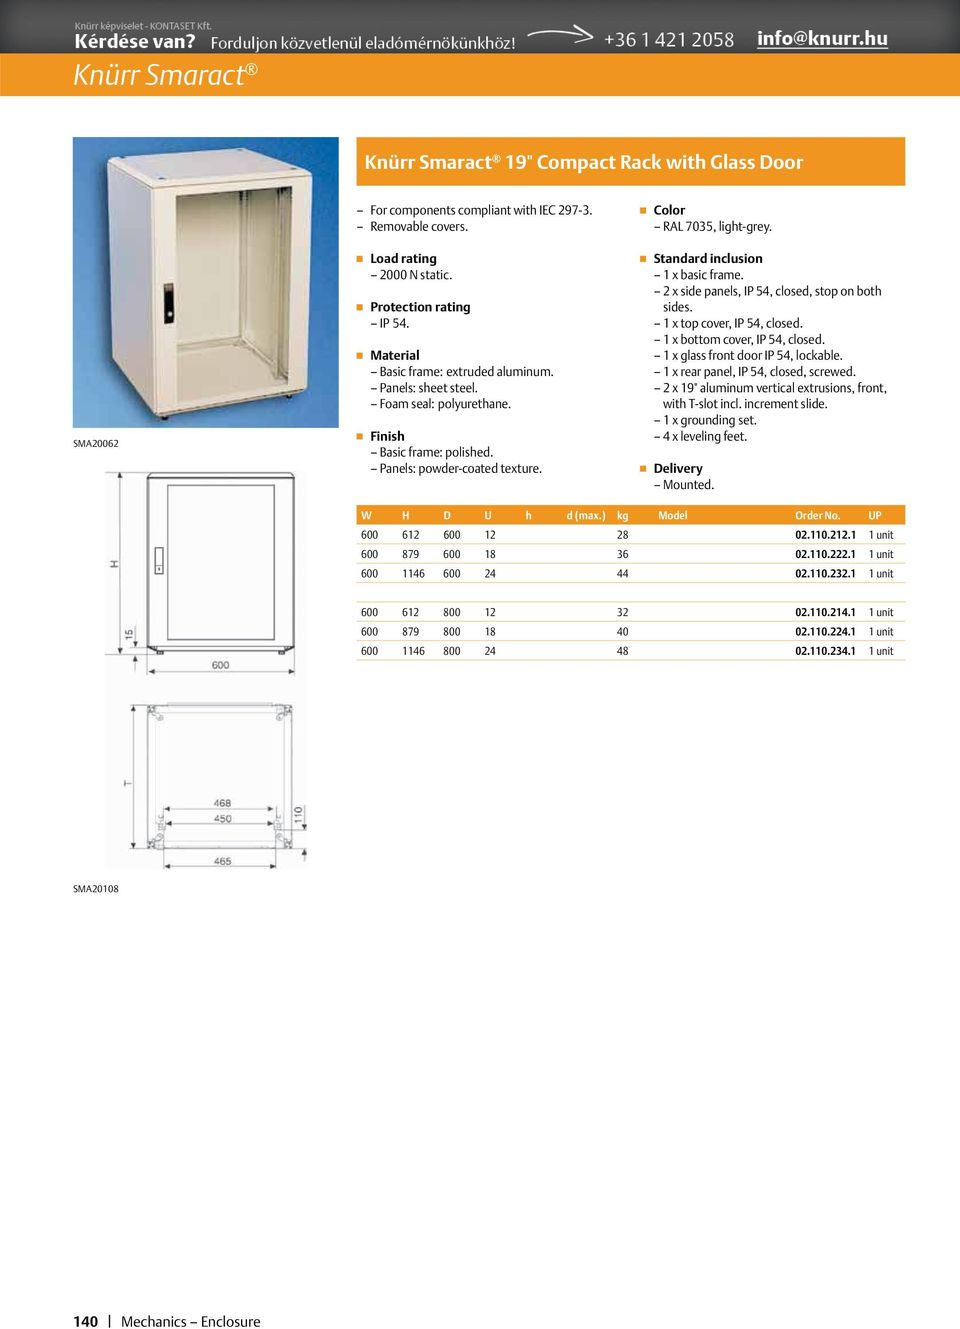 "1 x bottom cover, IP 54, closed. 1 x glass front door IP 54, lockable. 1 x rear panel, IP 54, closed, screwed. 2 x 19"" aluminum vertical extrusions, front, with T-slot incl. increment slide."